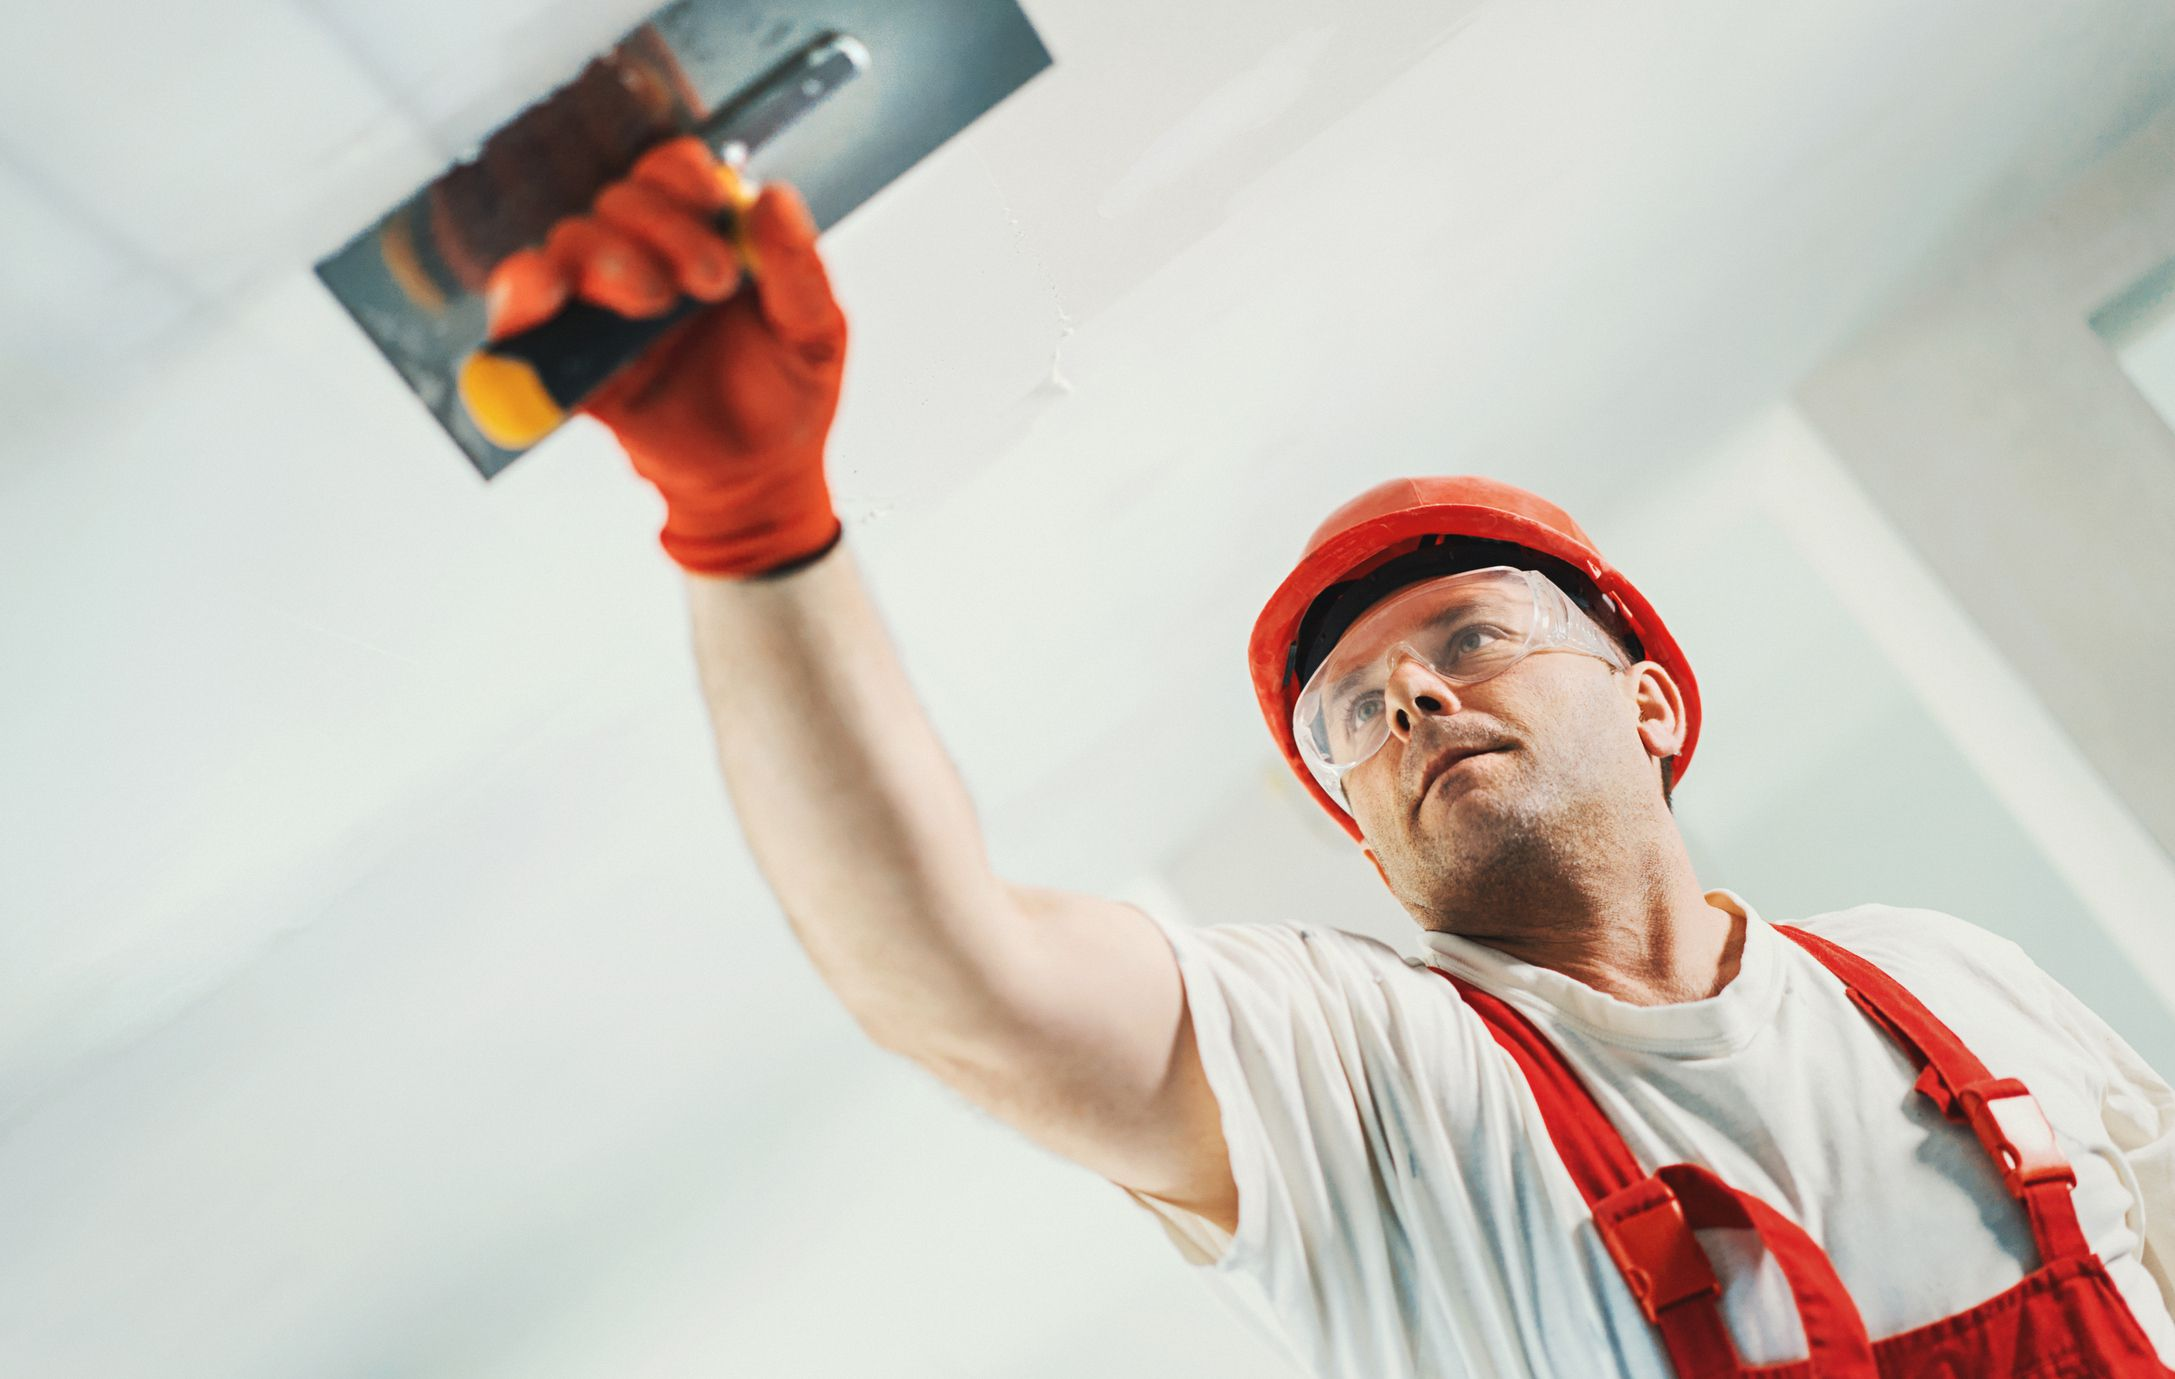 Drywall Primer 5 Best Types to Use